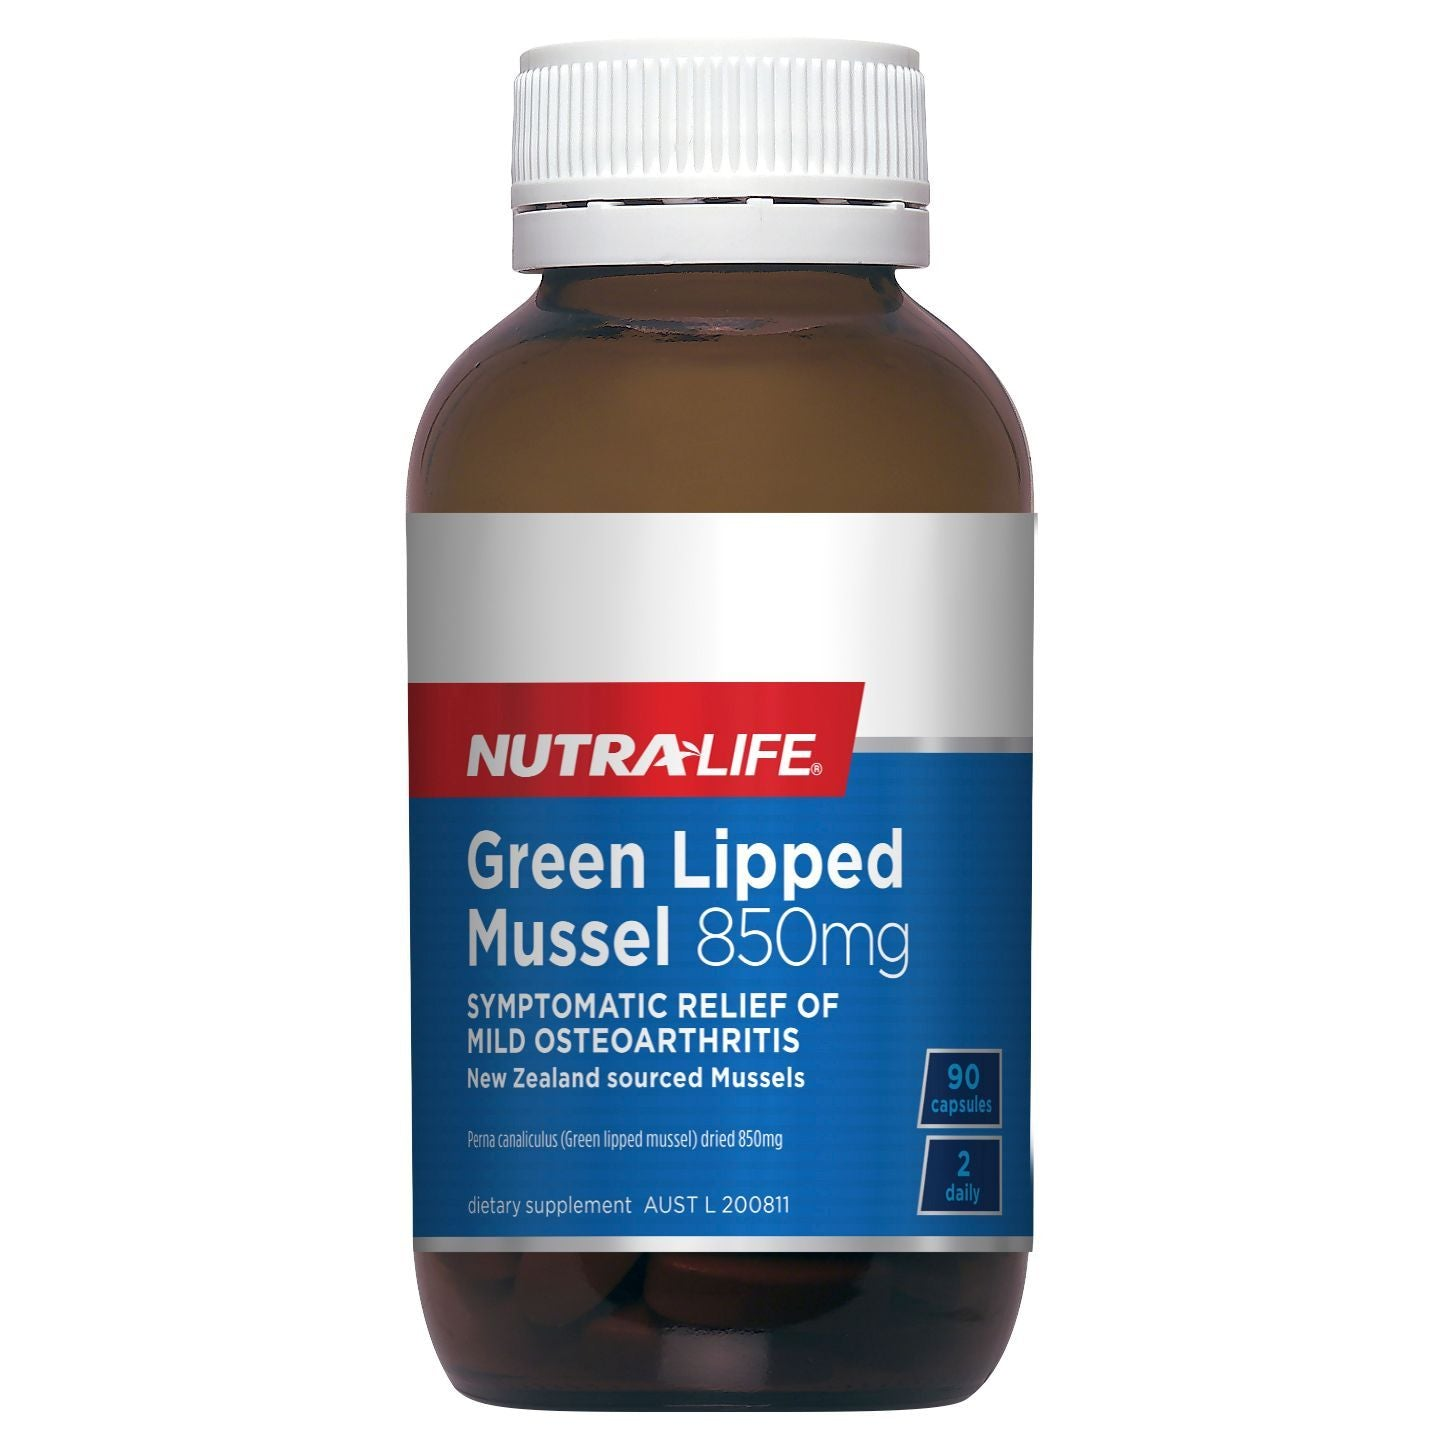 NUTRA-LIFE GREEN LIPPED MUSSEL 850MG 90C